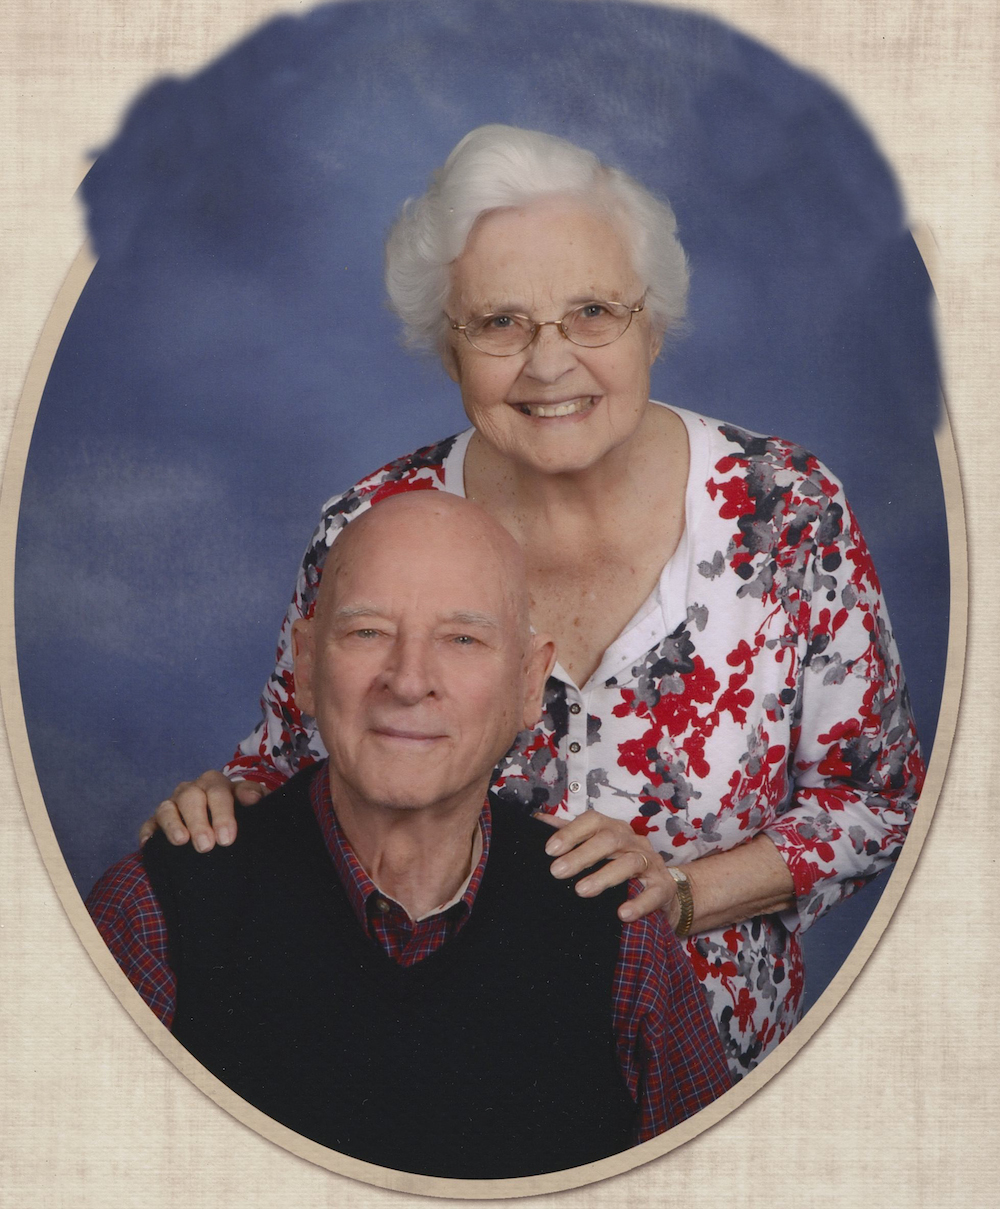 Photo of Frank De Haan '50 and wife Dolly